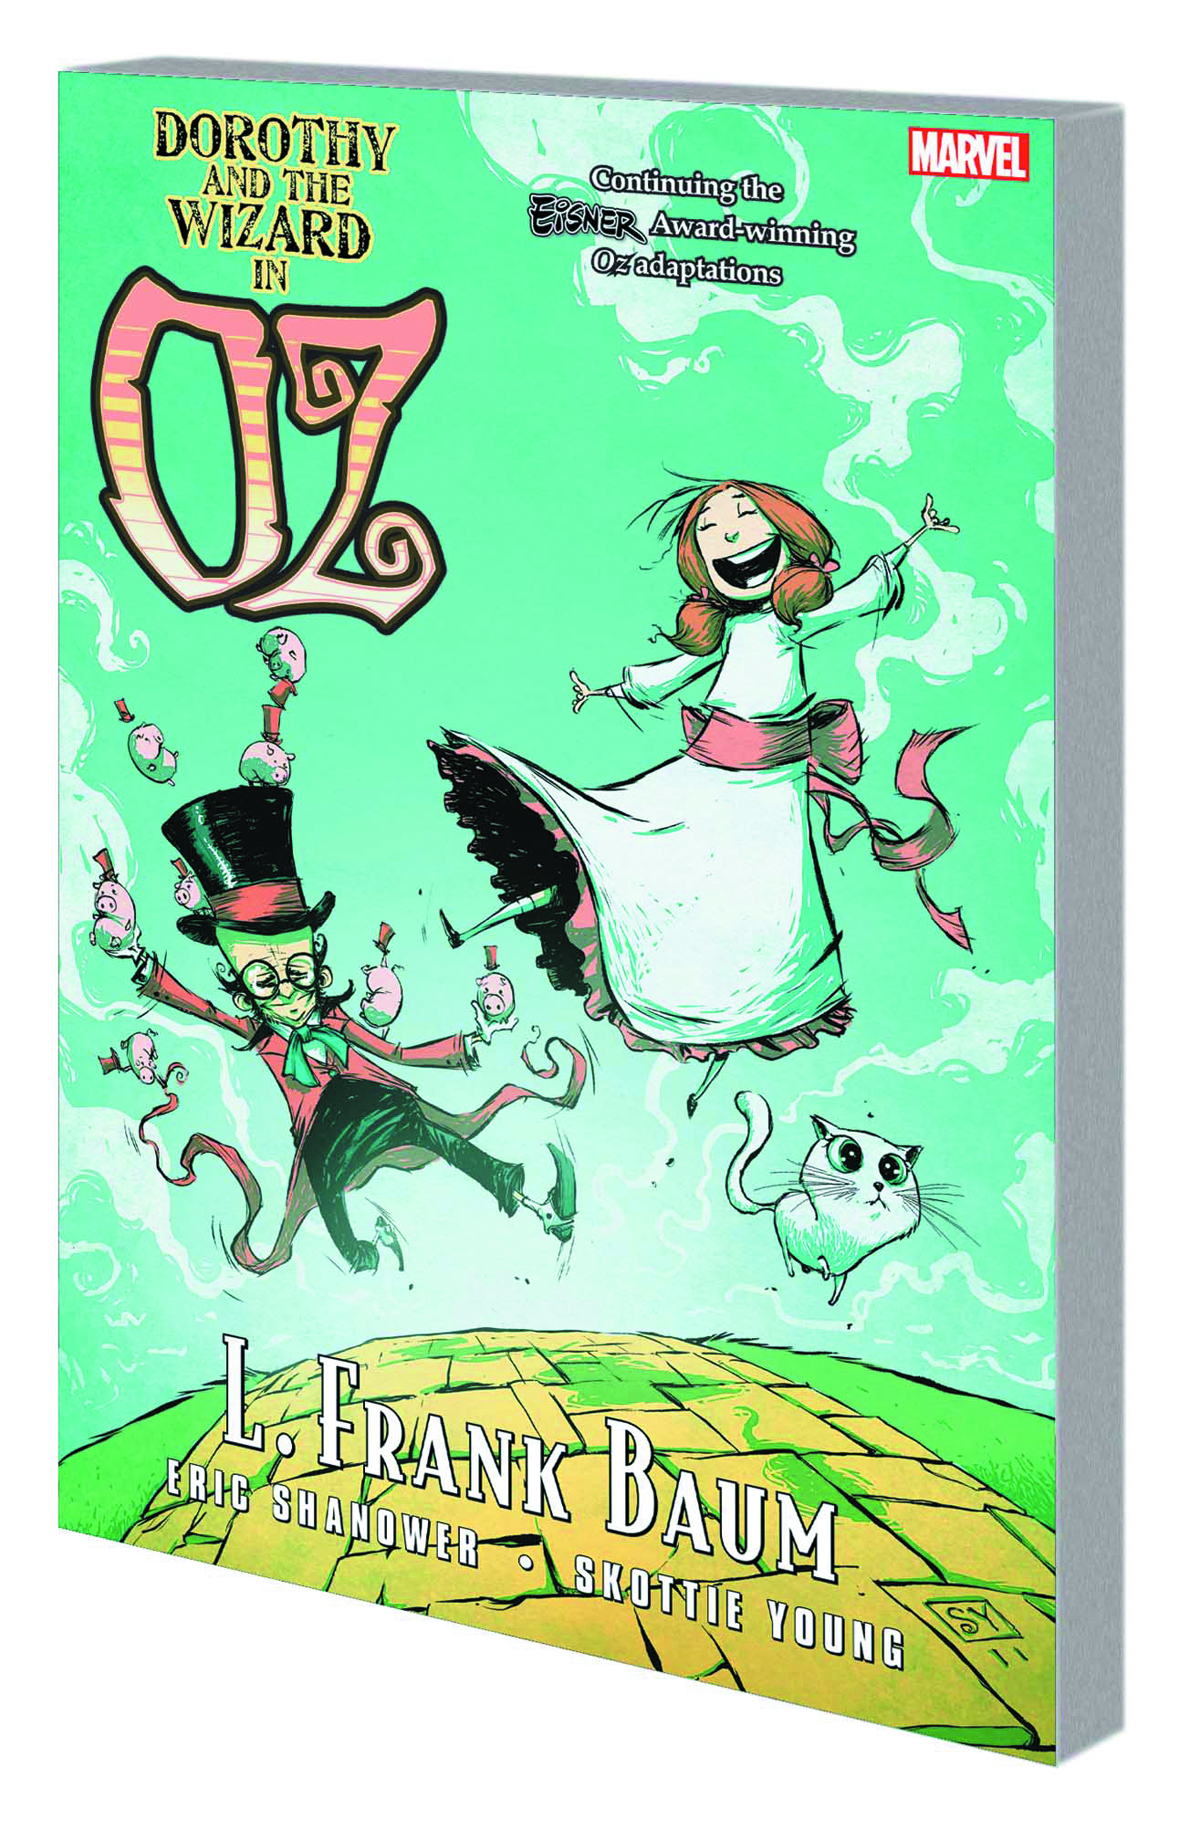 OZ GN TP DOROTHY AND WIZARD IN OZ